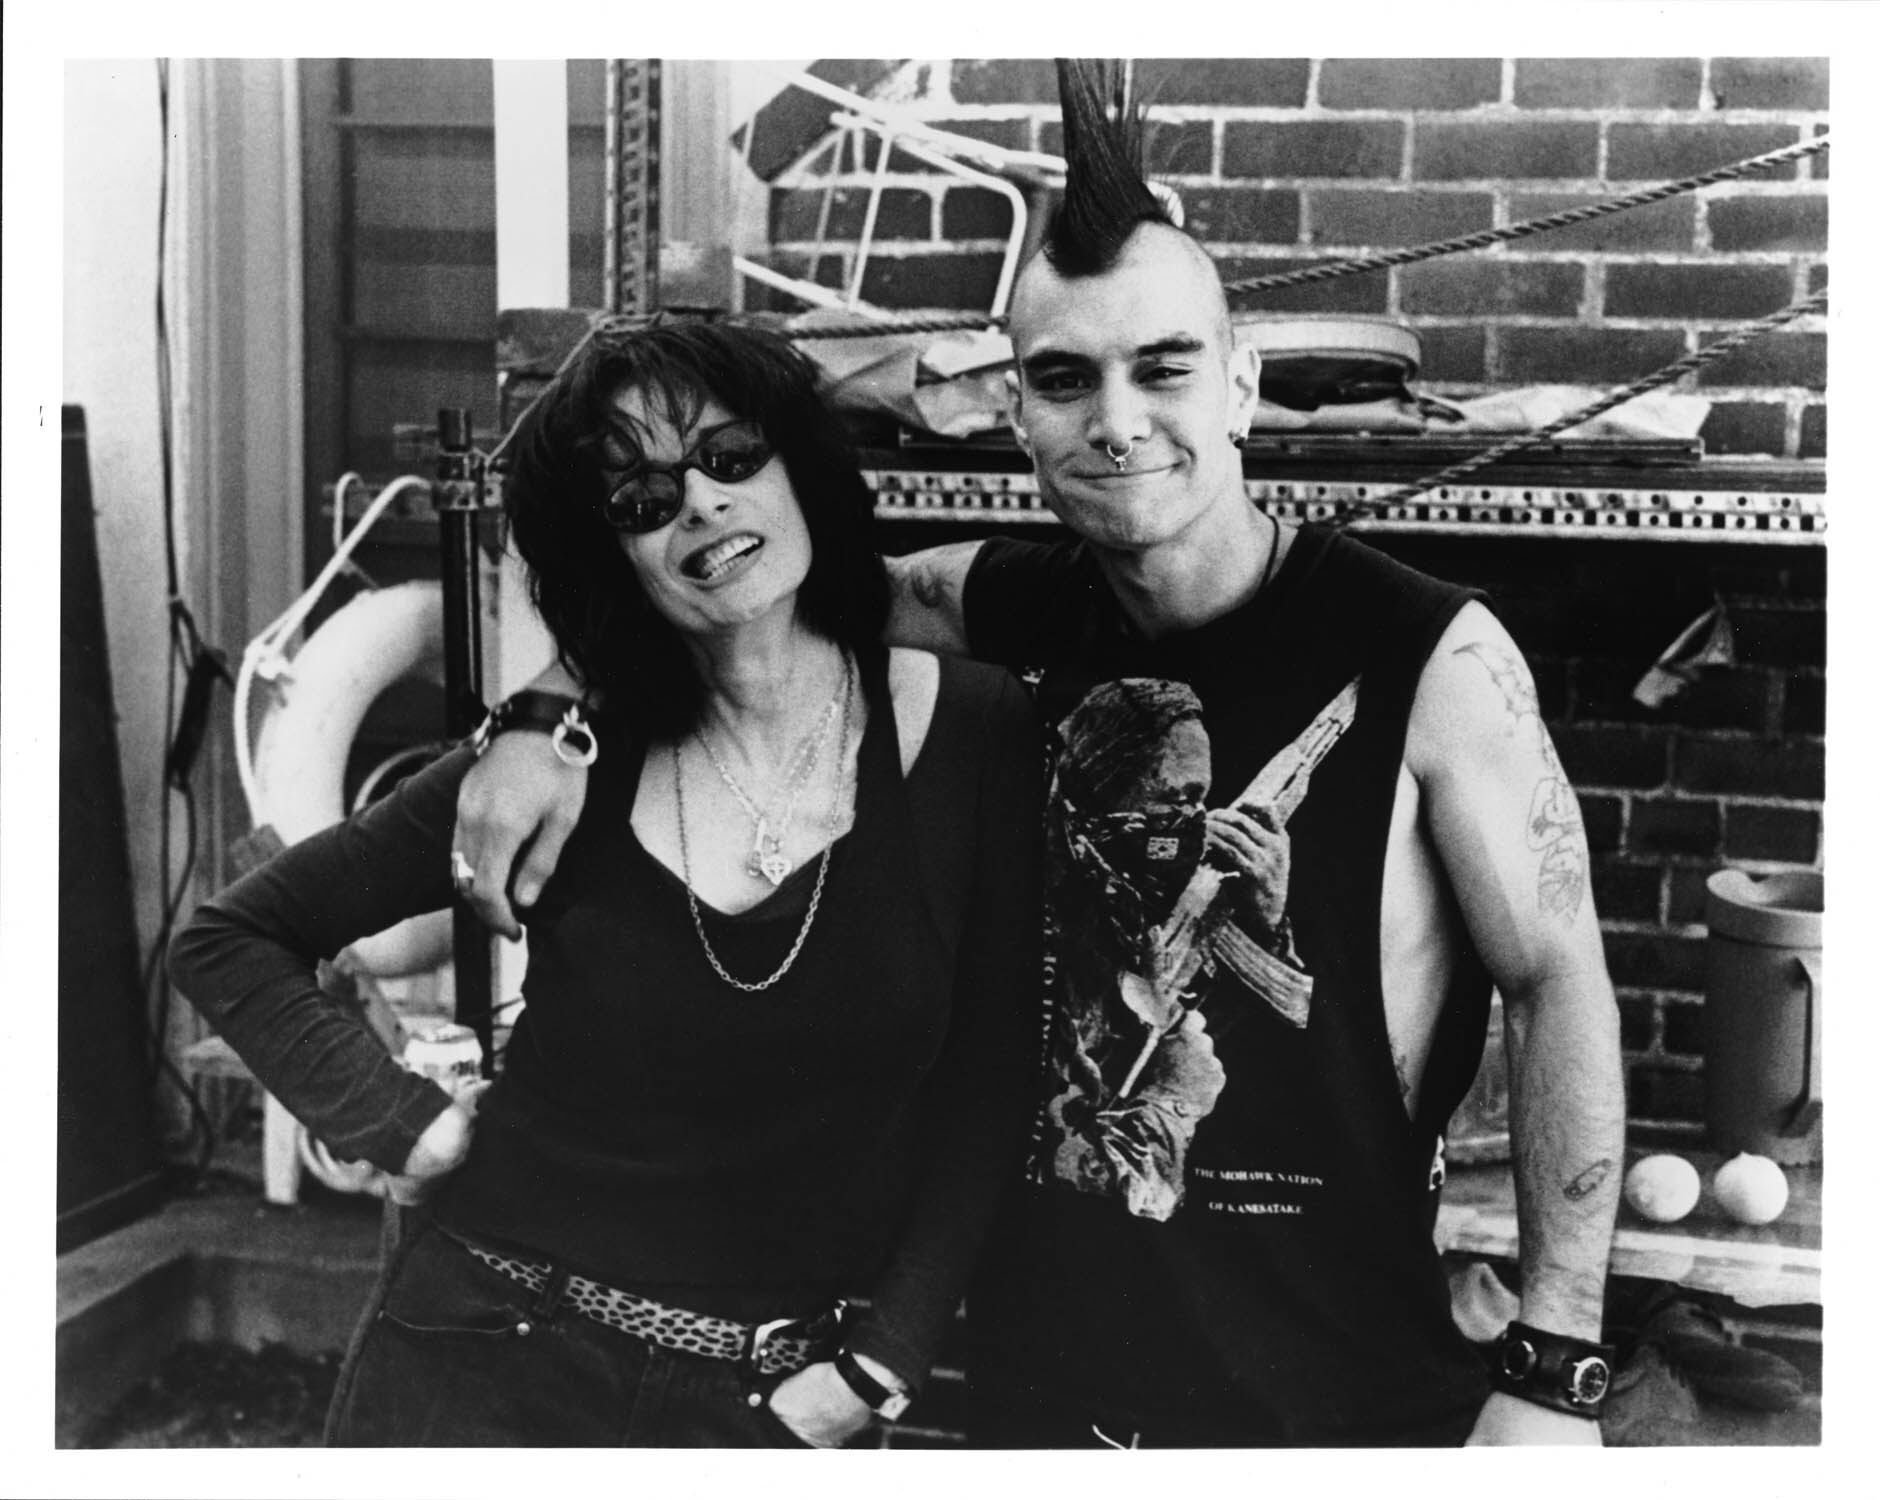 Director Penelope Spheeris